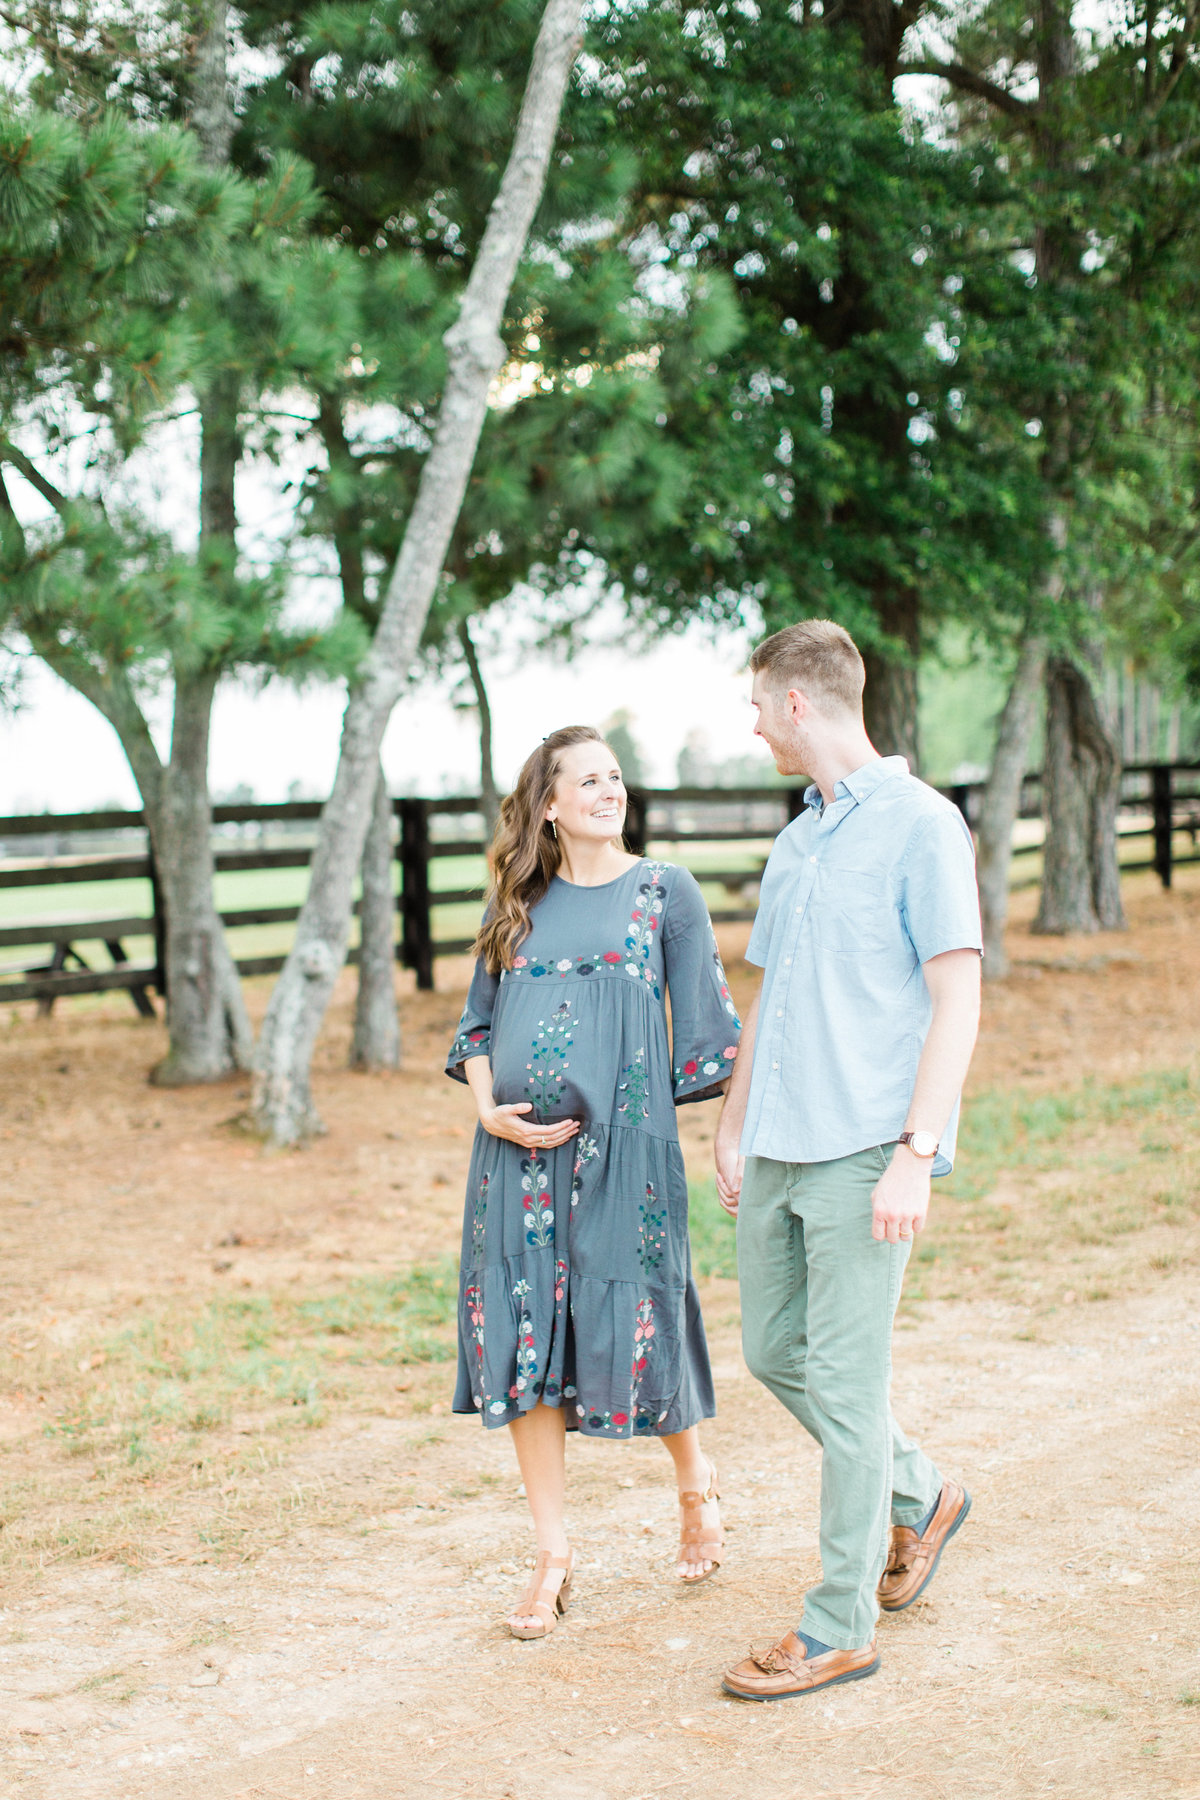 Vaughns_MaternitySession-8850